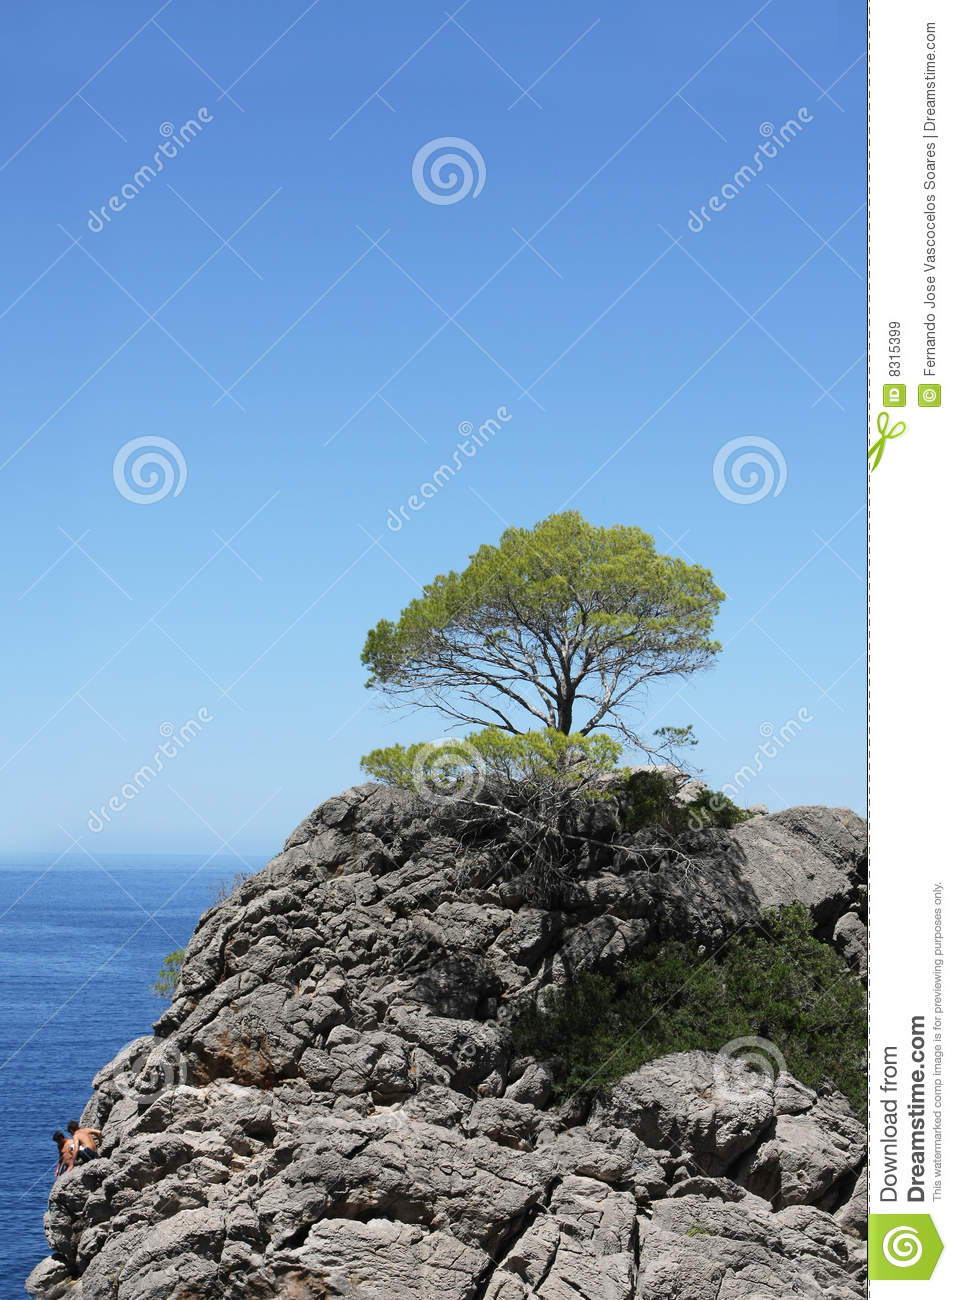 Top Of The Trees Stock Photography - Image: 35130172